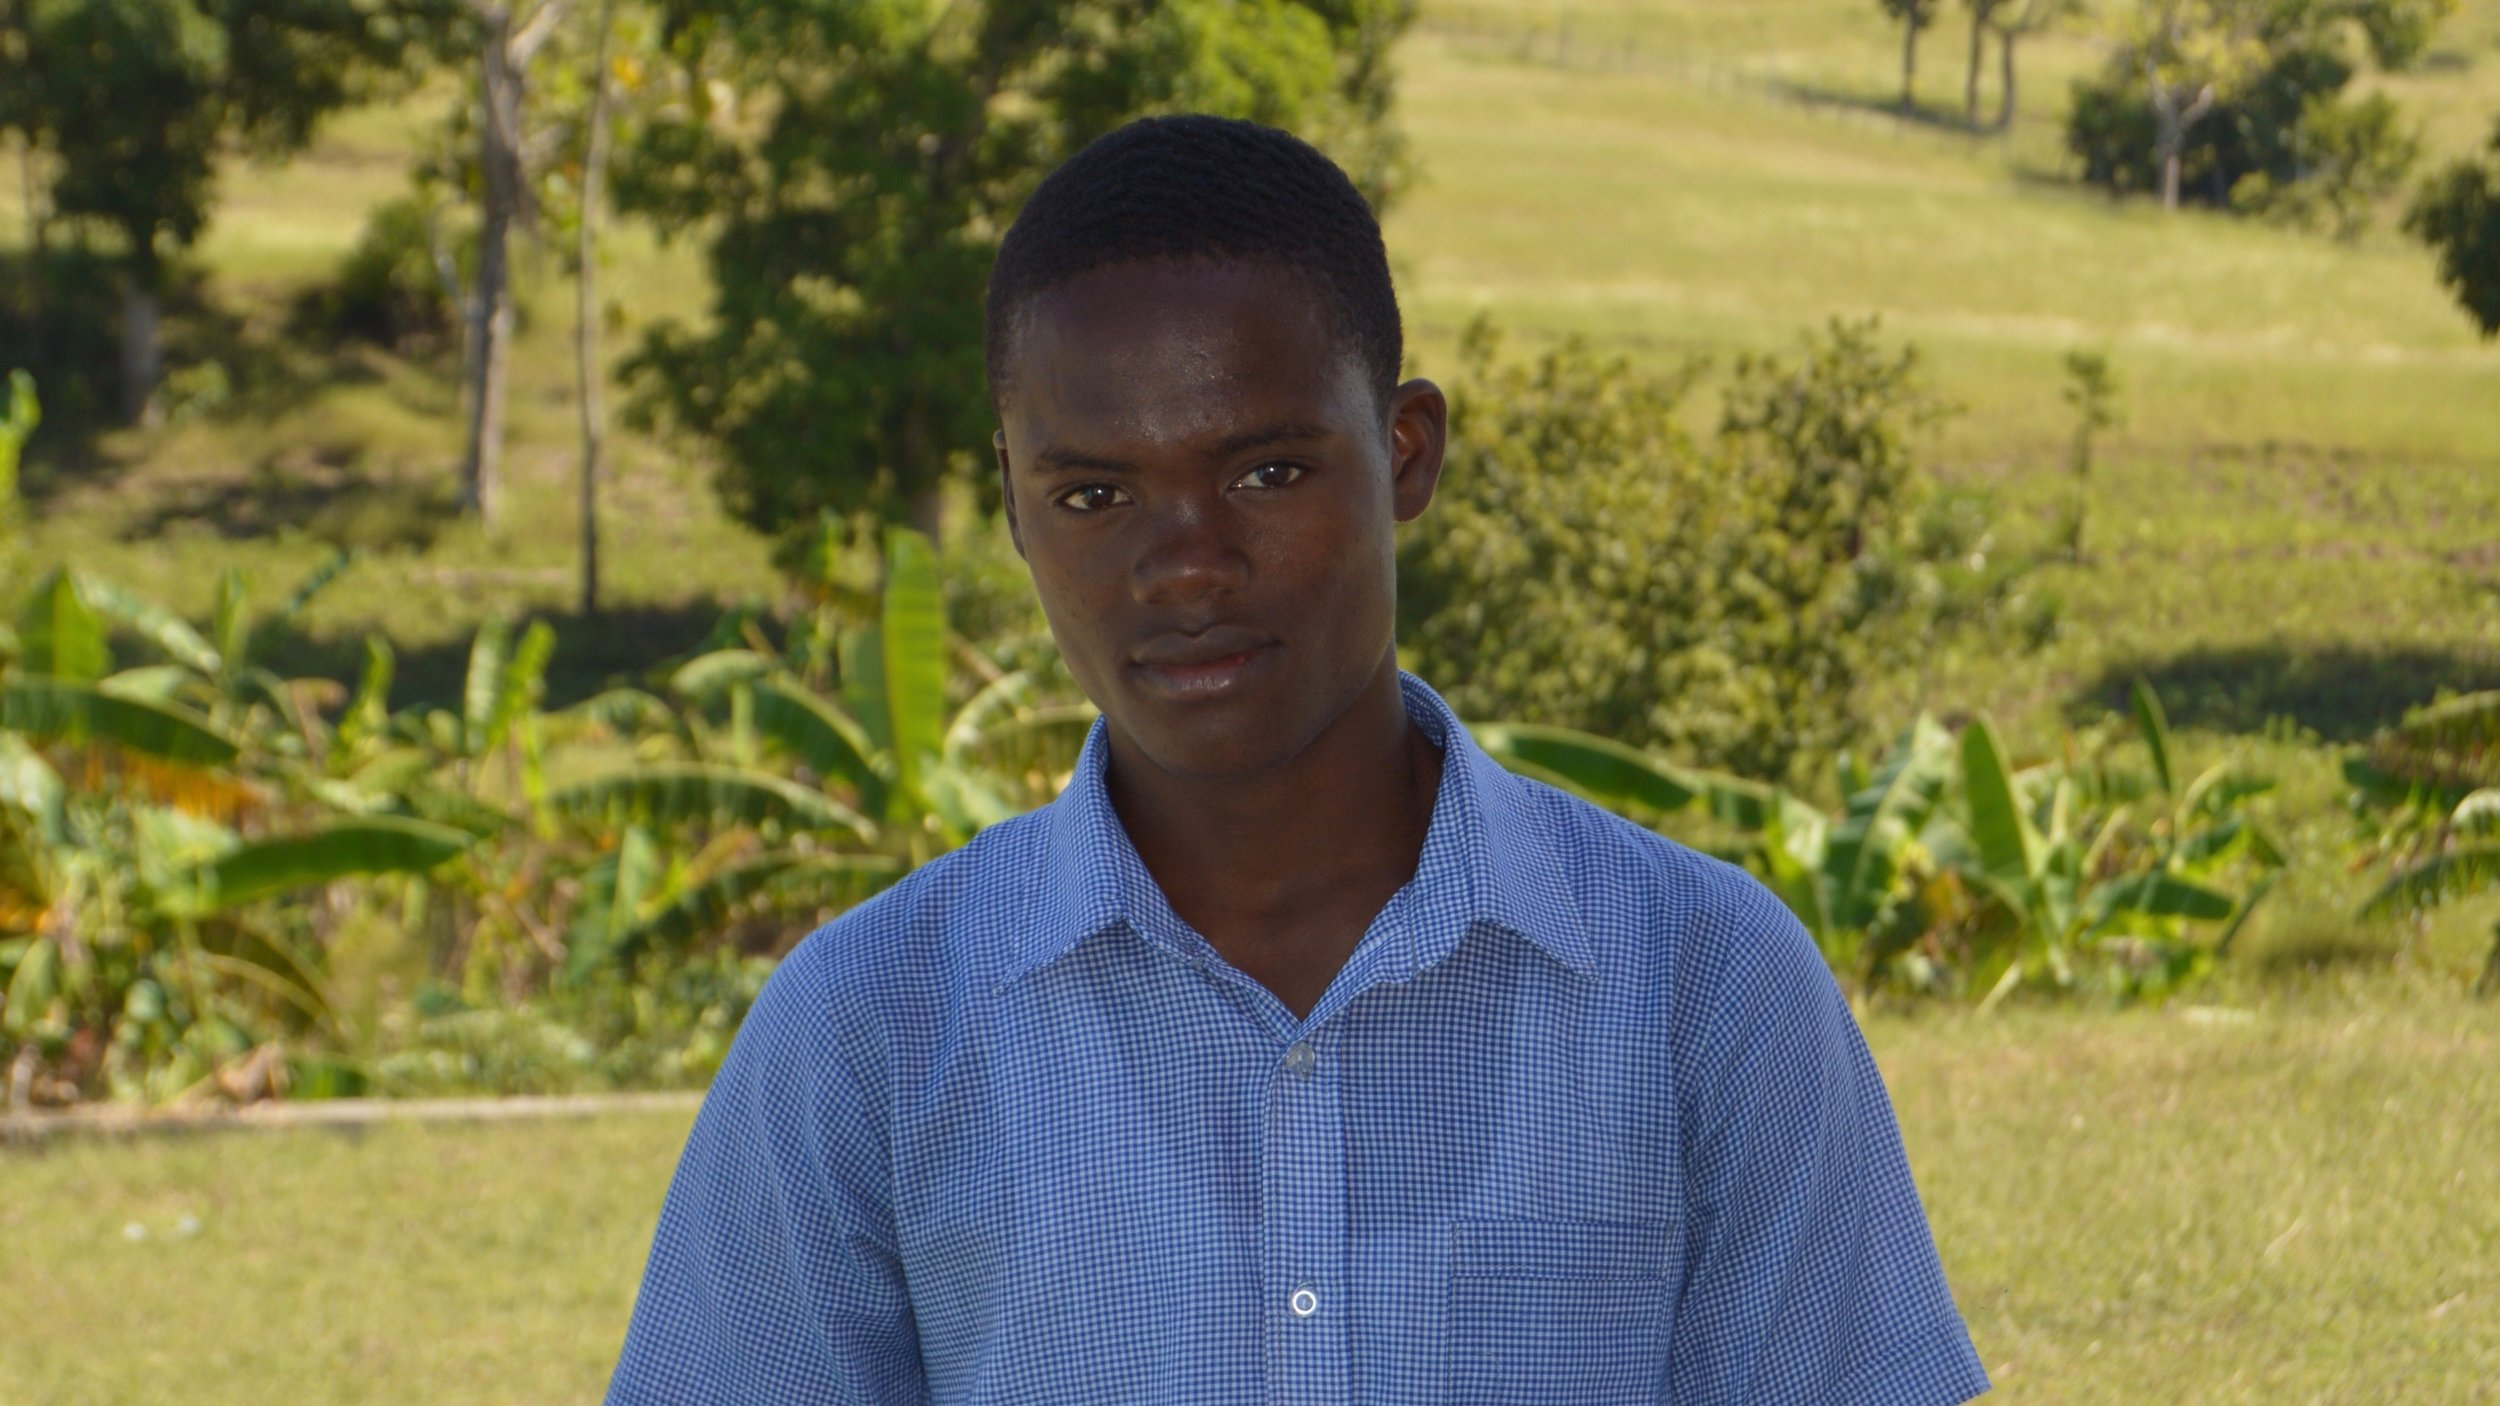 Claudy, Work Study Student   CLAUDY, one of five work study students, CONTINUES TO BE AMONG THE TOP THREE STUDENTS IN HIS CLASS AS HE CONSISTENTLY EXCELS IN ACADEMICS AND SHOWS LEADERSHIP BEYOND HIS YEARS.